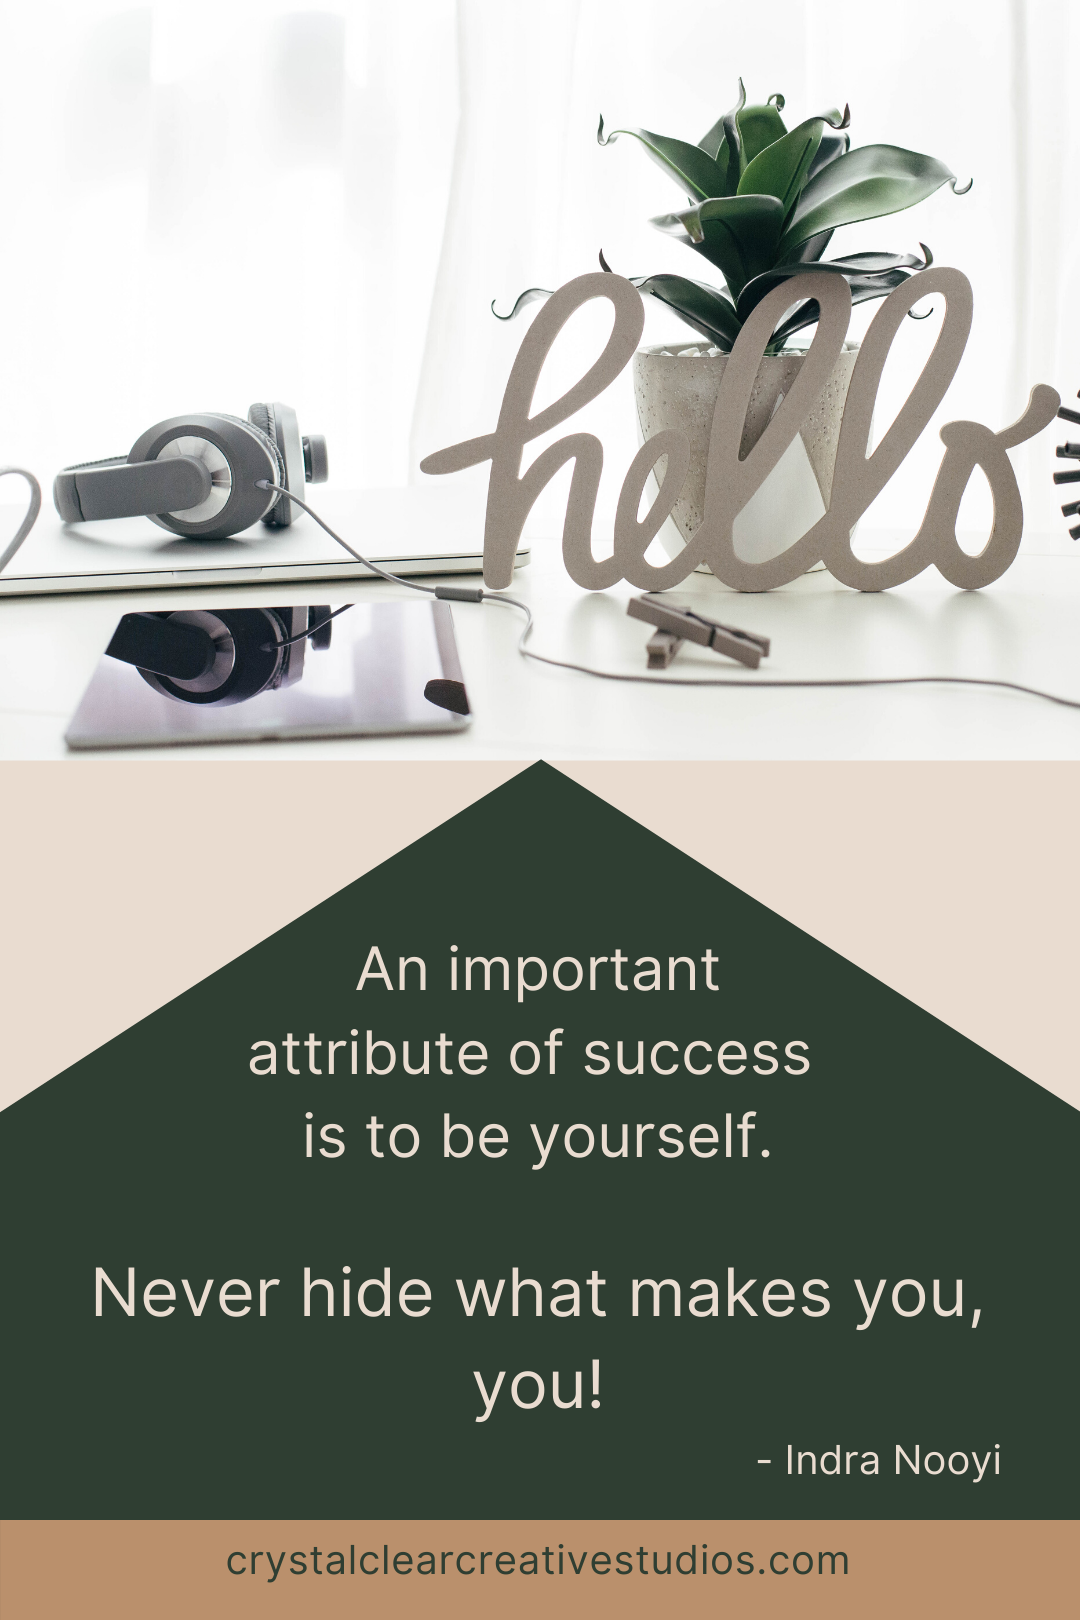 An important attribute of success is to be yourself. Never hide what makes you, you.